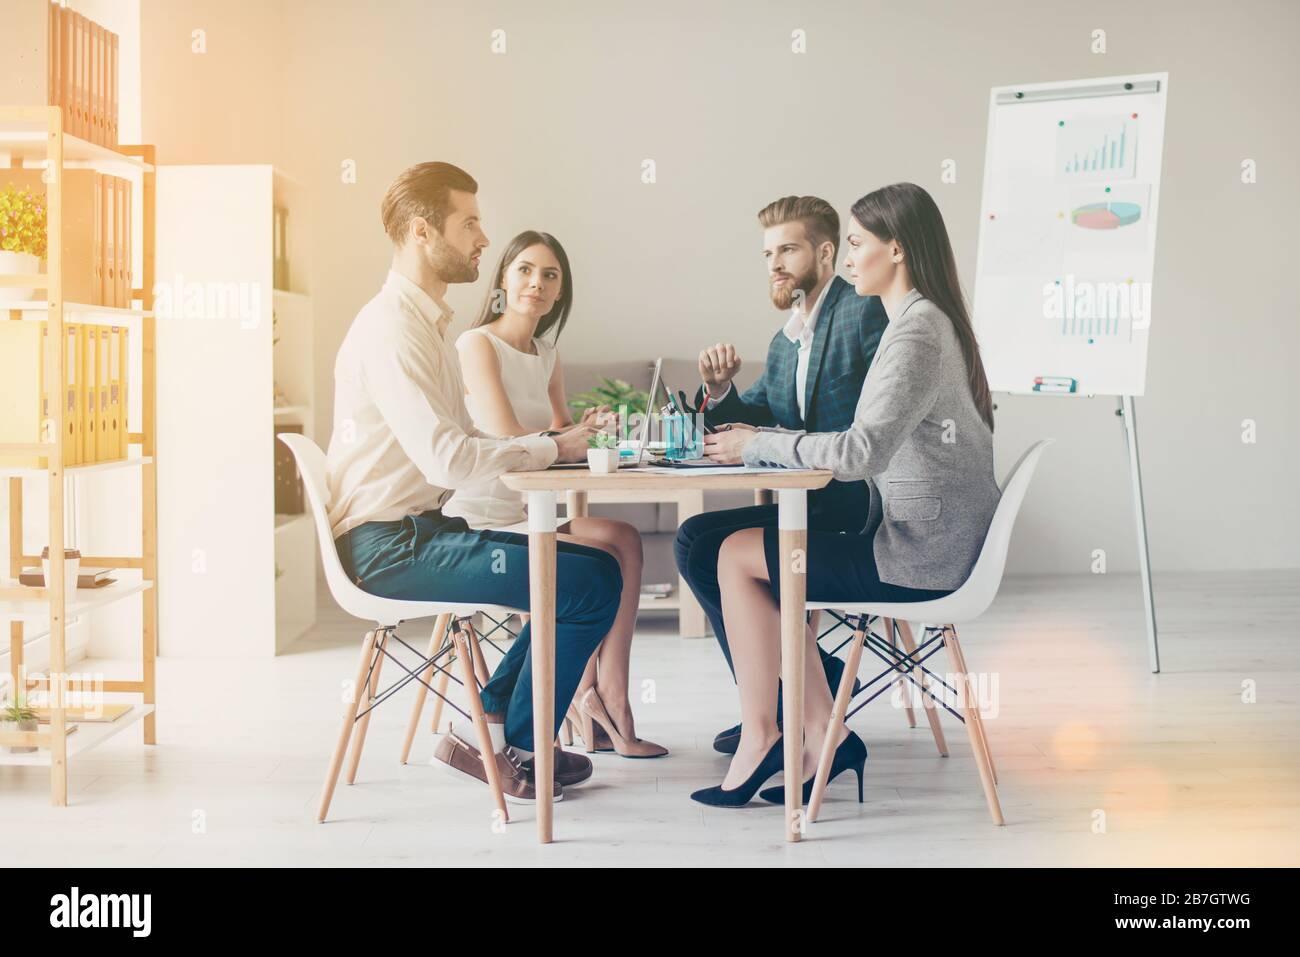 Young business people in formalwear discussing something seriously while sitting together at the table in light modern workplace Stock Photo